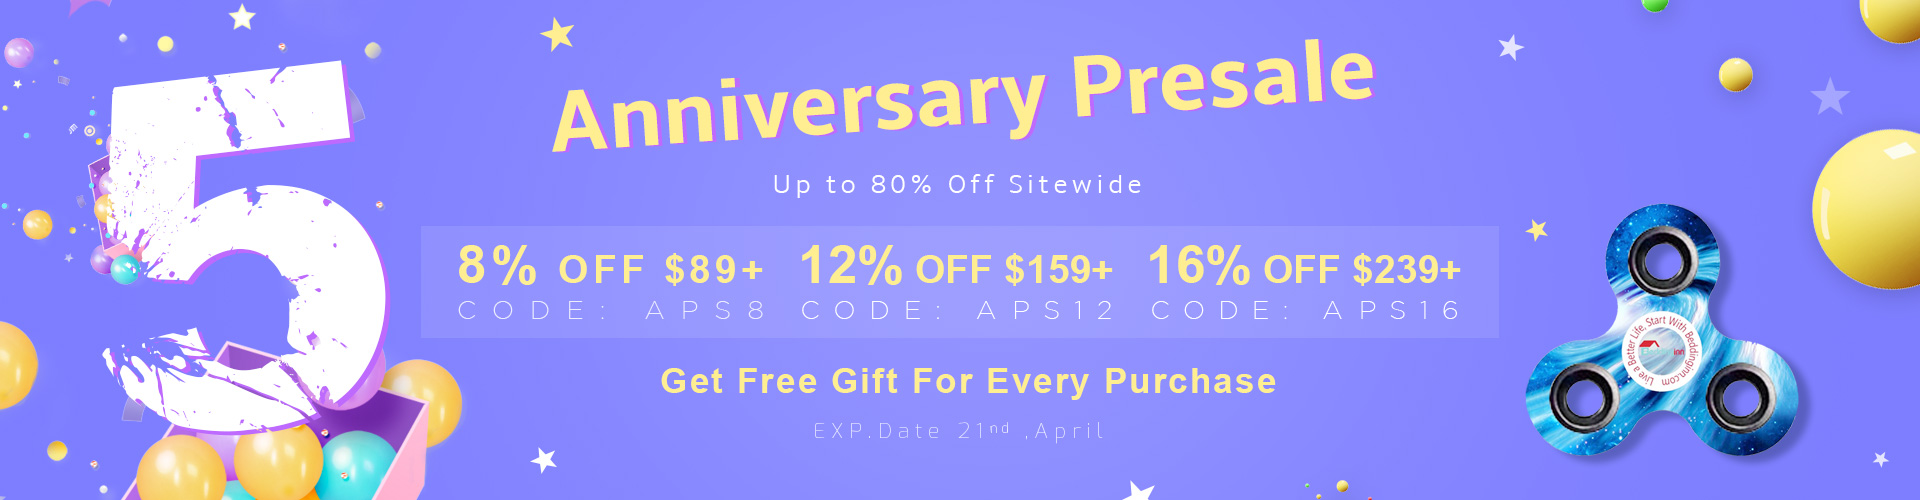 Up to 80% Off Storewide+8% OFF over $89,CODE:APS8,12% OFF over $159,CODE:APS12,16% OFF over $239,CODE:APS16 ,Get Free Gift For Every Purchase